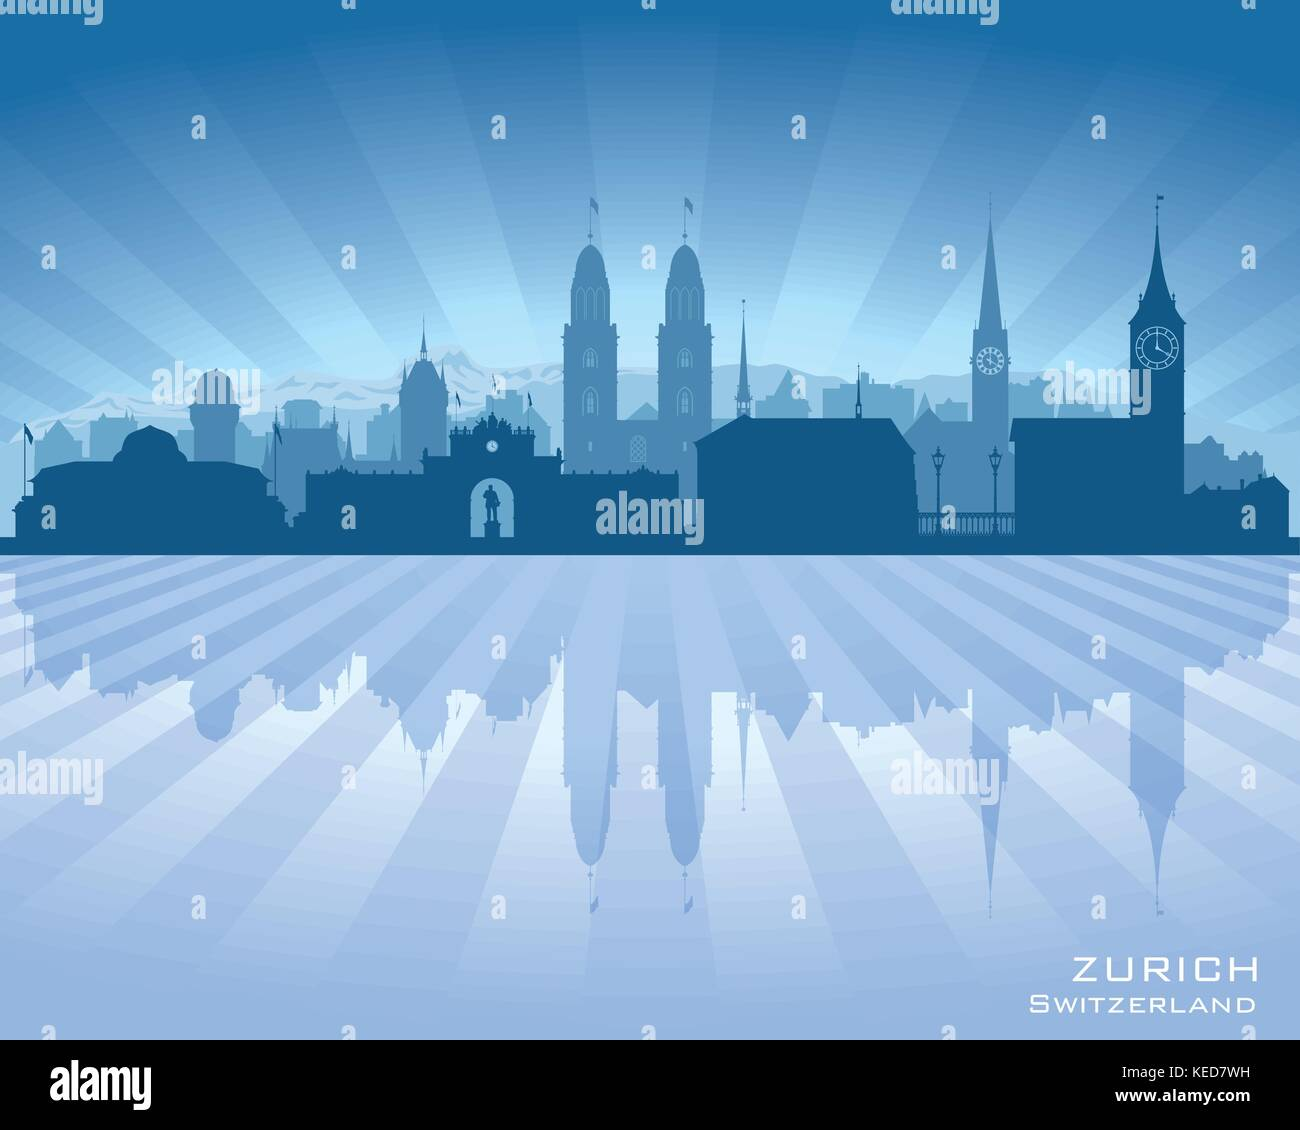 Zurich Switzerland city skyline vector silhouette illustration - Stock Vector